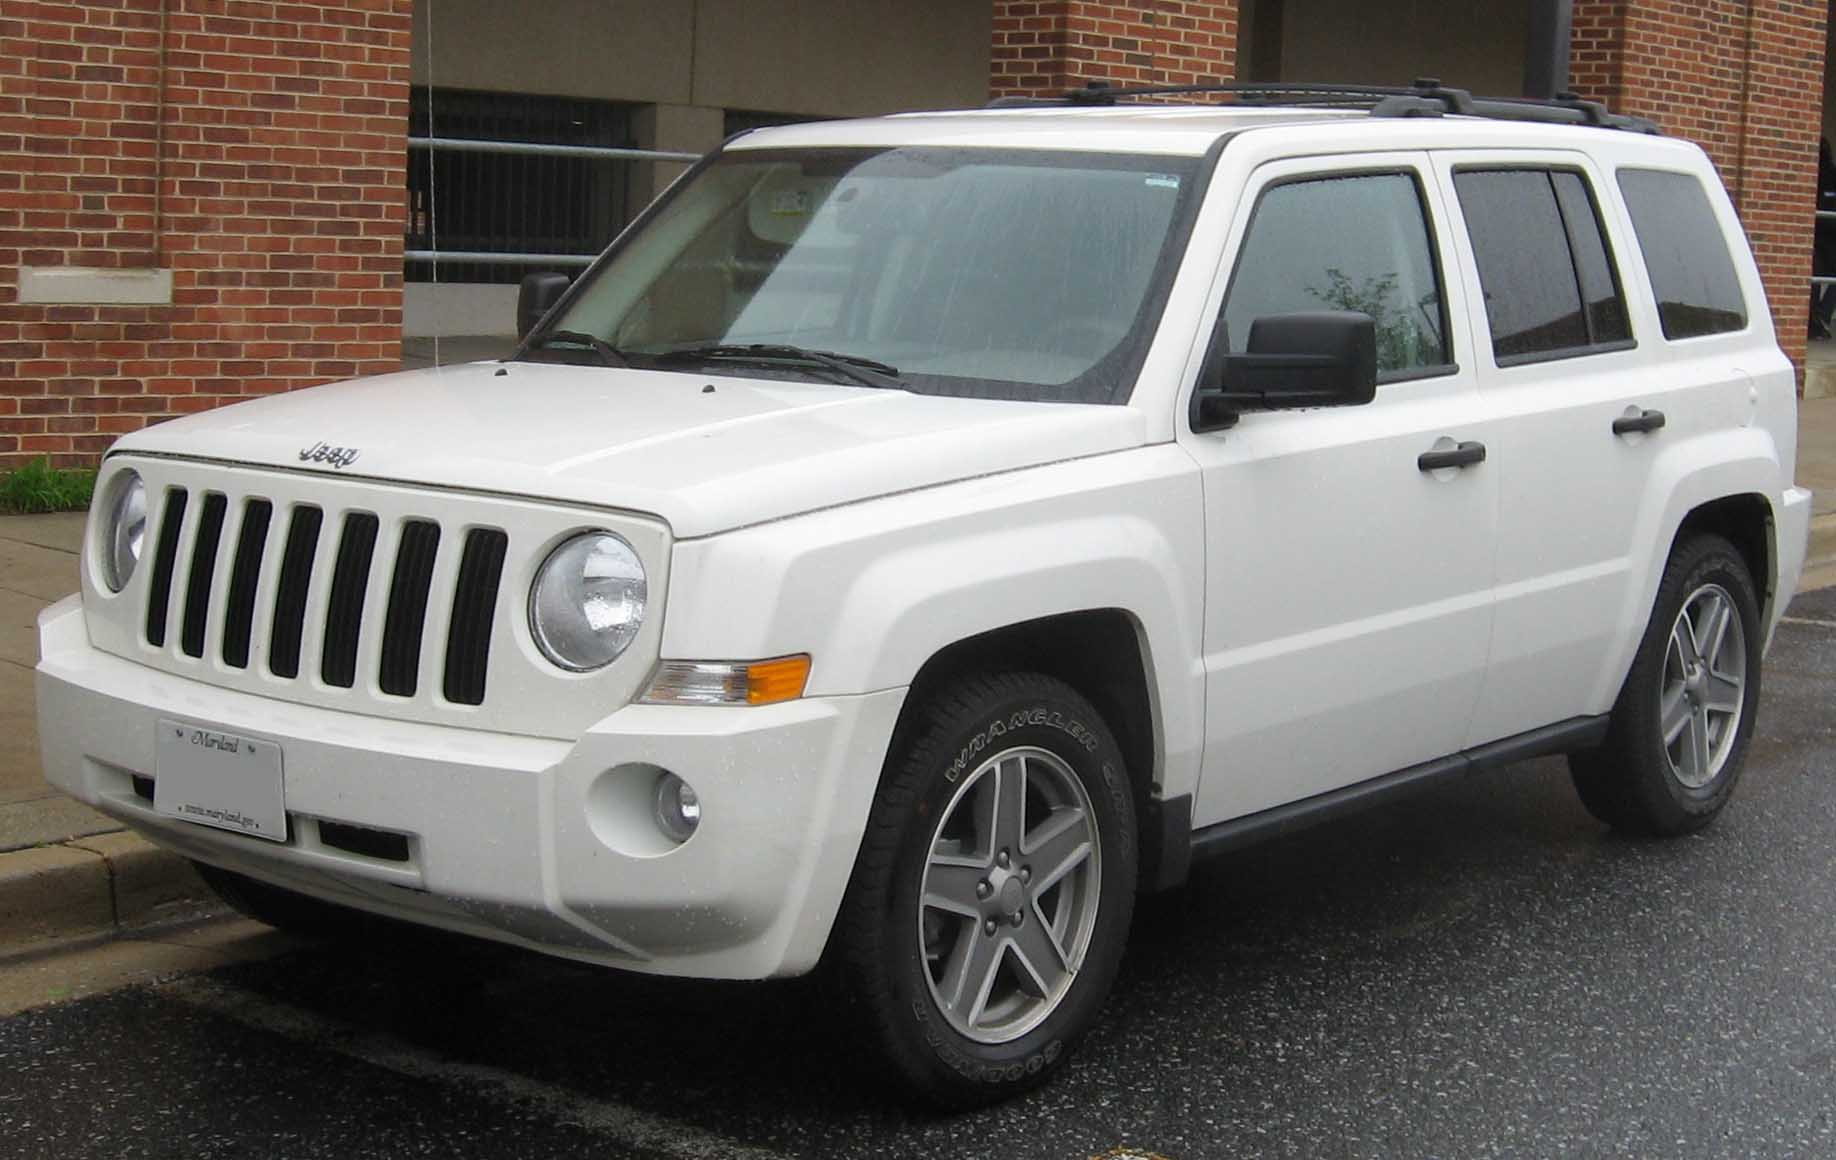 file jeep patriot jpg